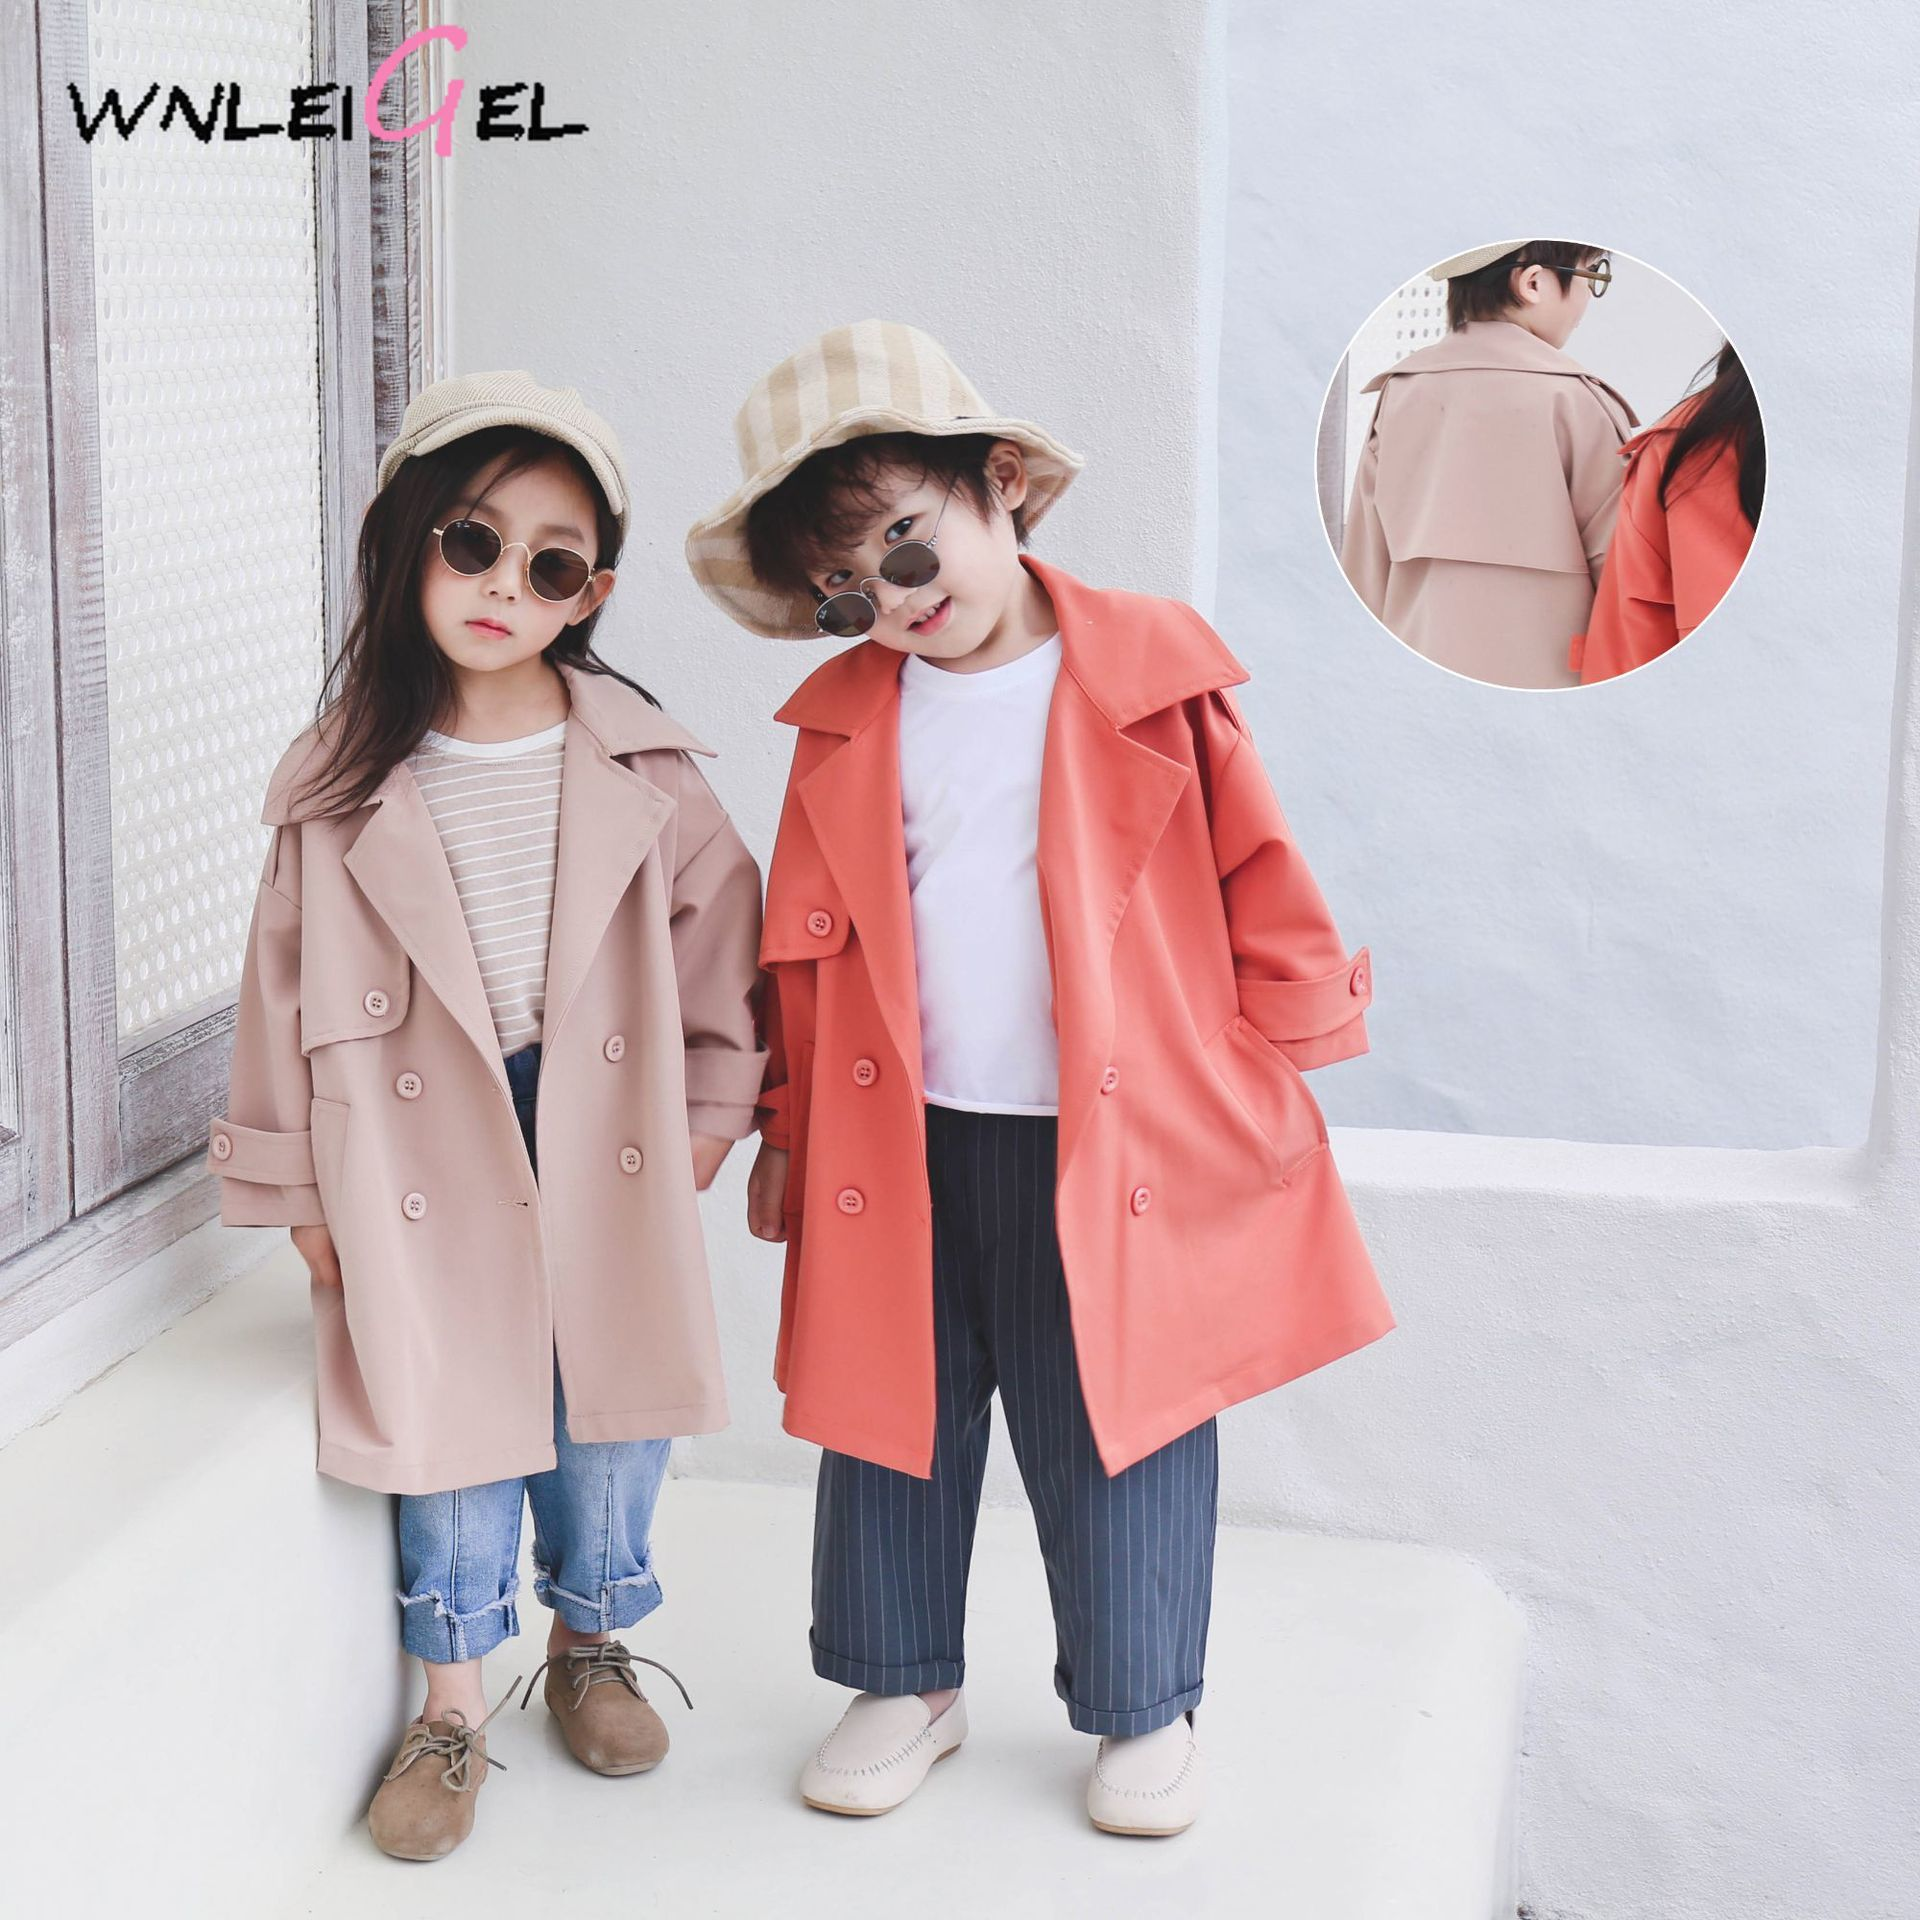 WLG 2019 spring boys girls trench kids double breasted long coat baby fashion beige orange clothes children 1-6 yearsWLG 2019 spring boys girls trench kids double breasted long coat baby fashion beige orange clothes children 1-6 years